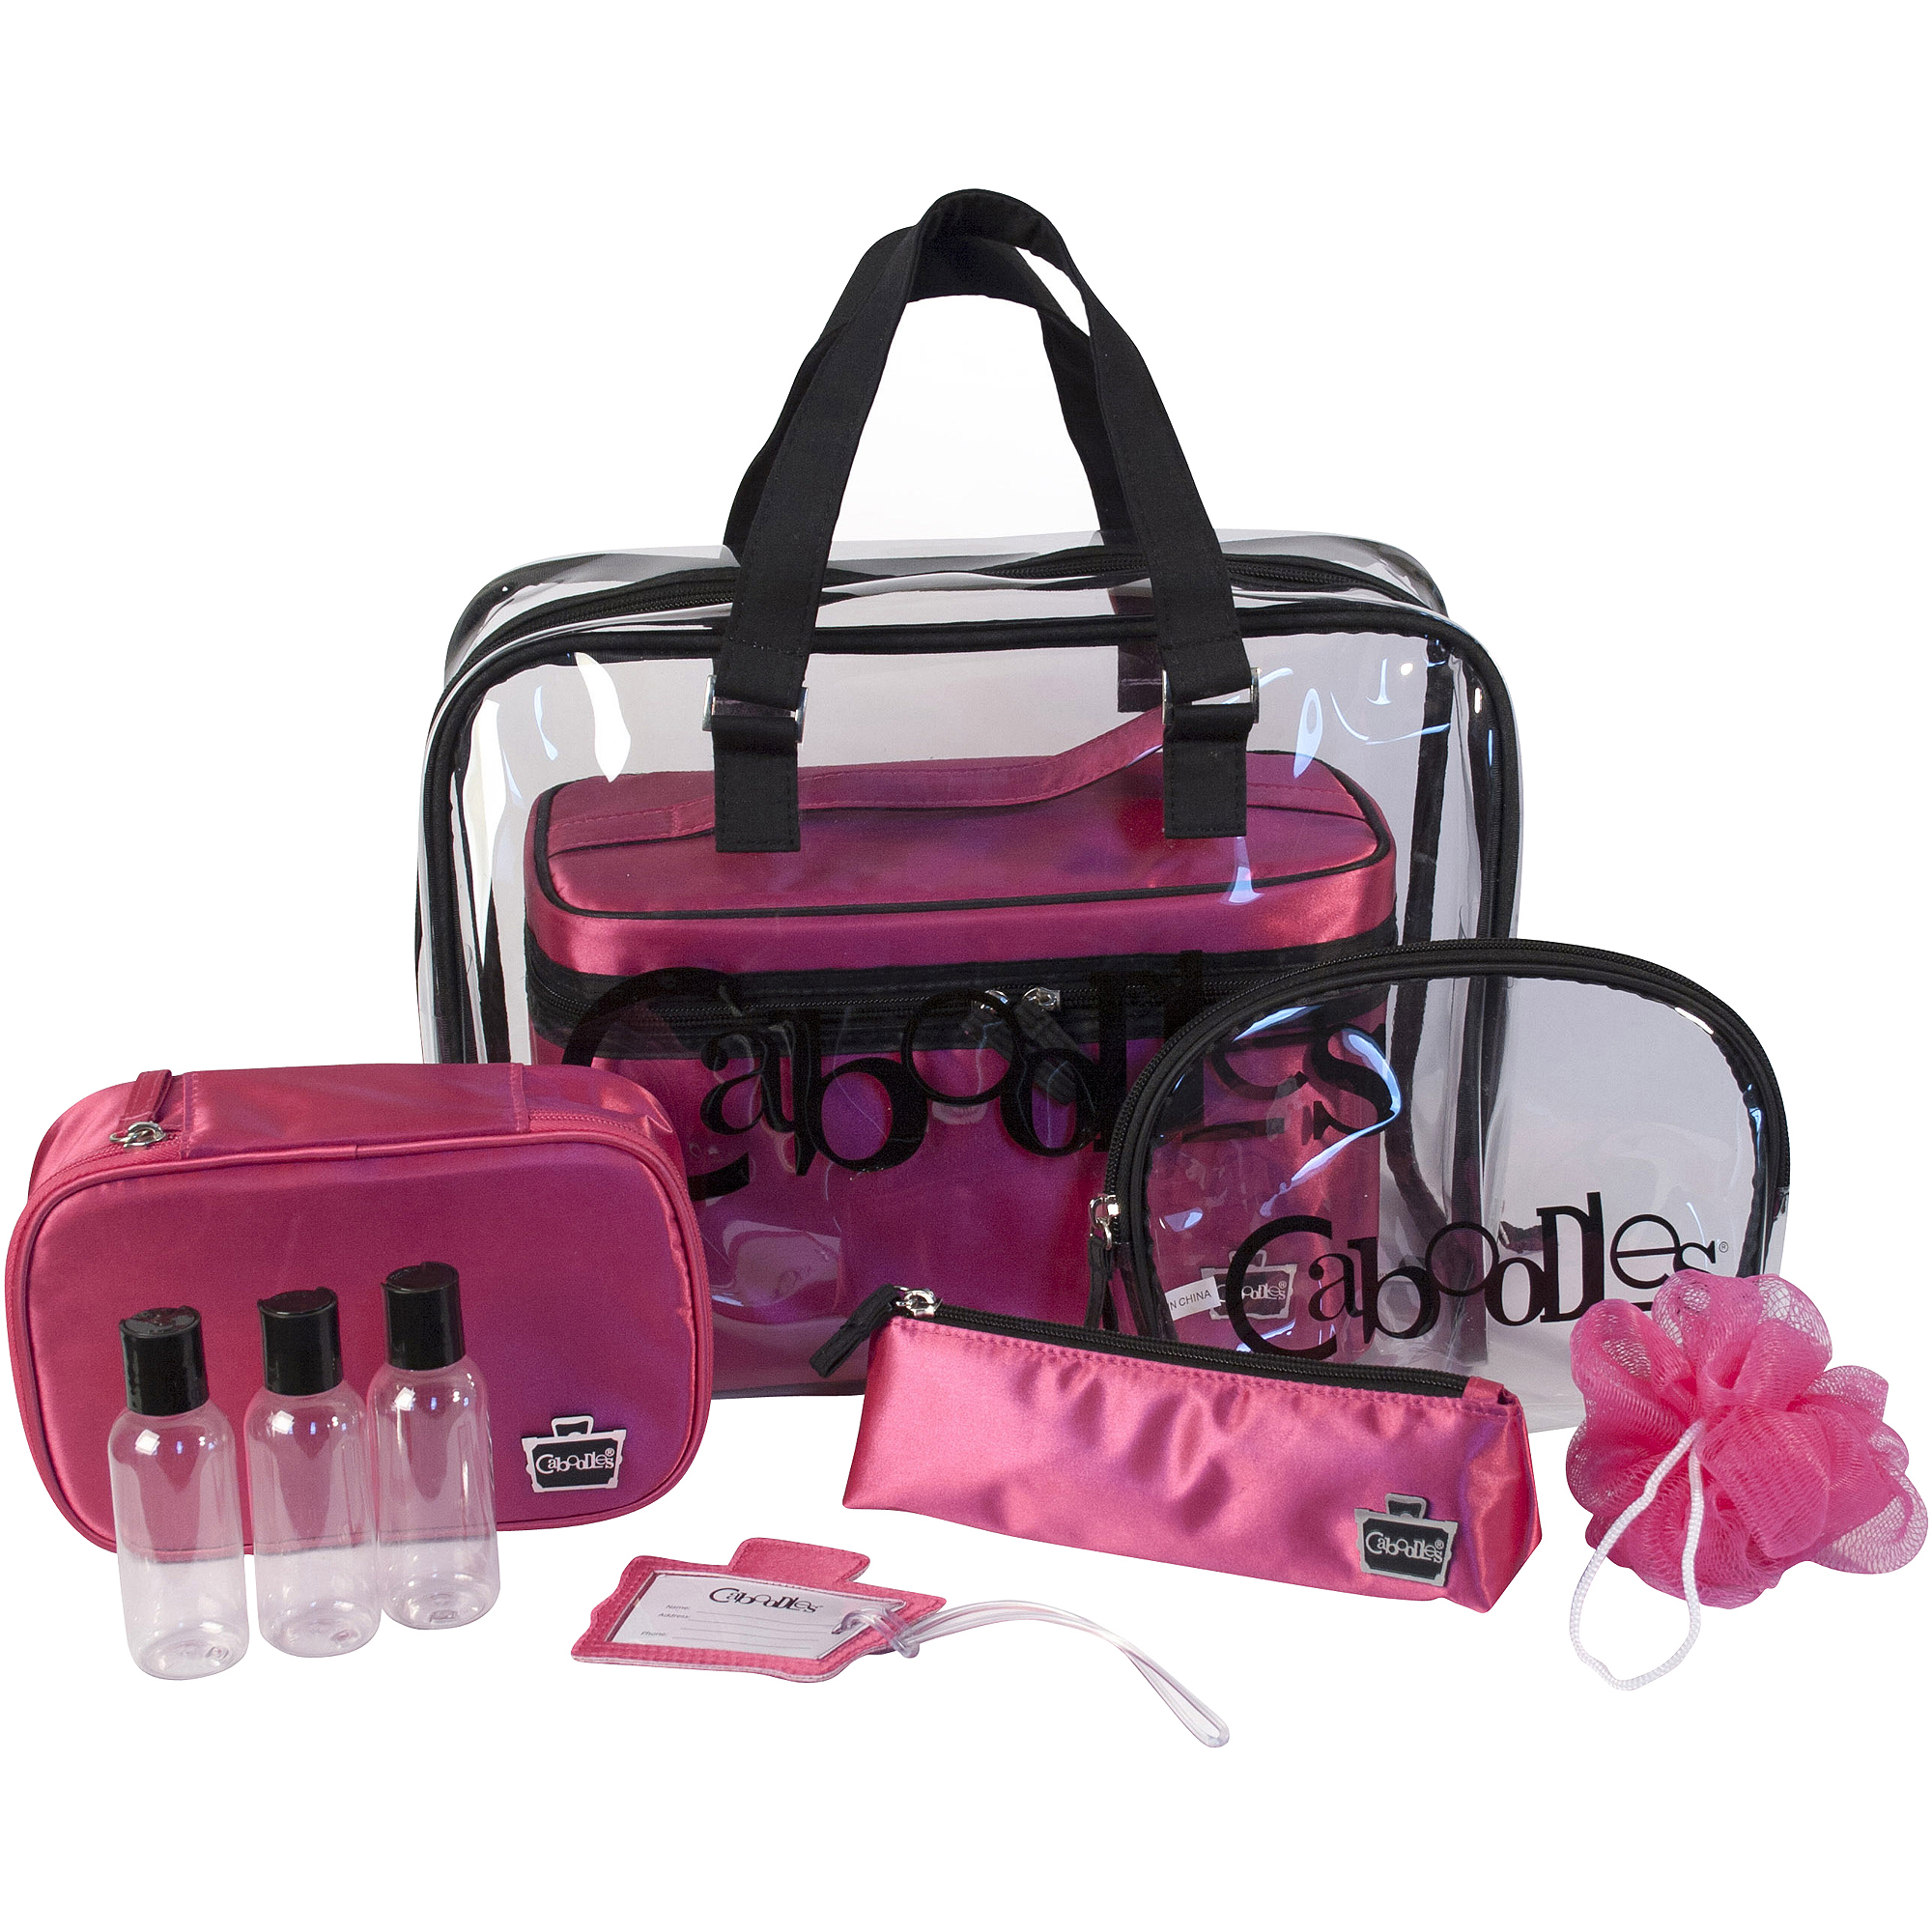 Caboodles Pink Satin Cosmetic Bag Set, 10 pc